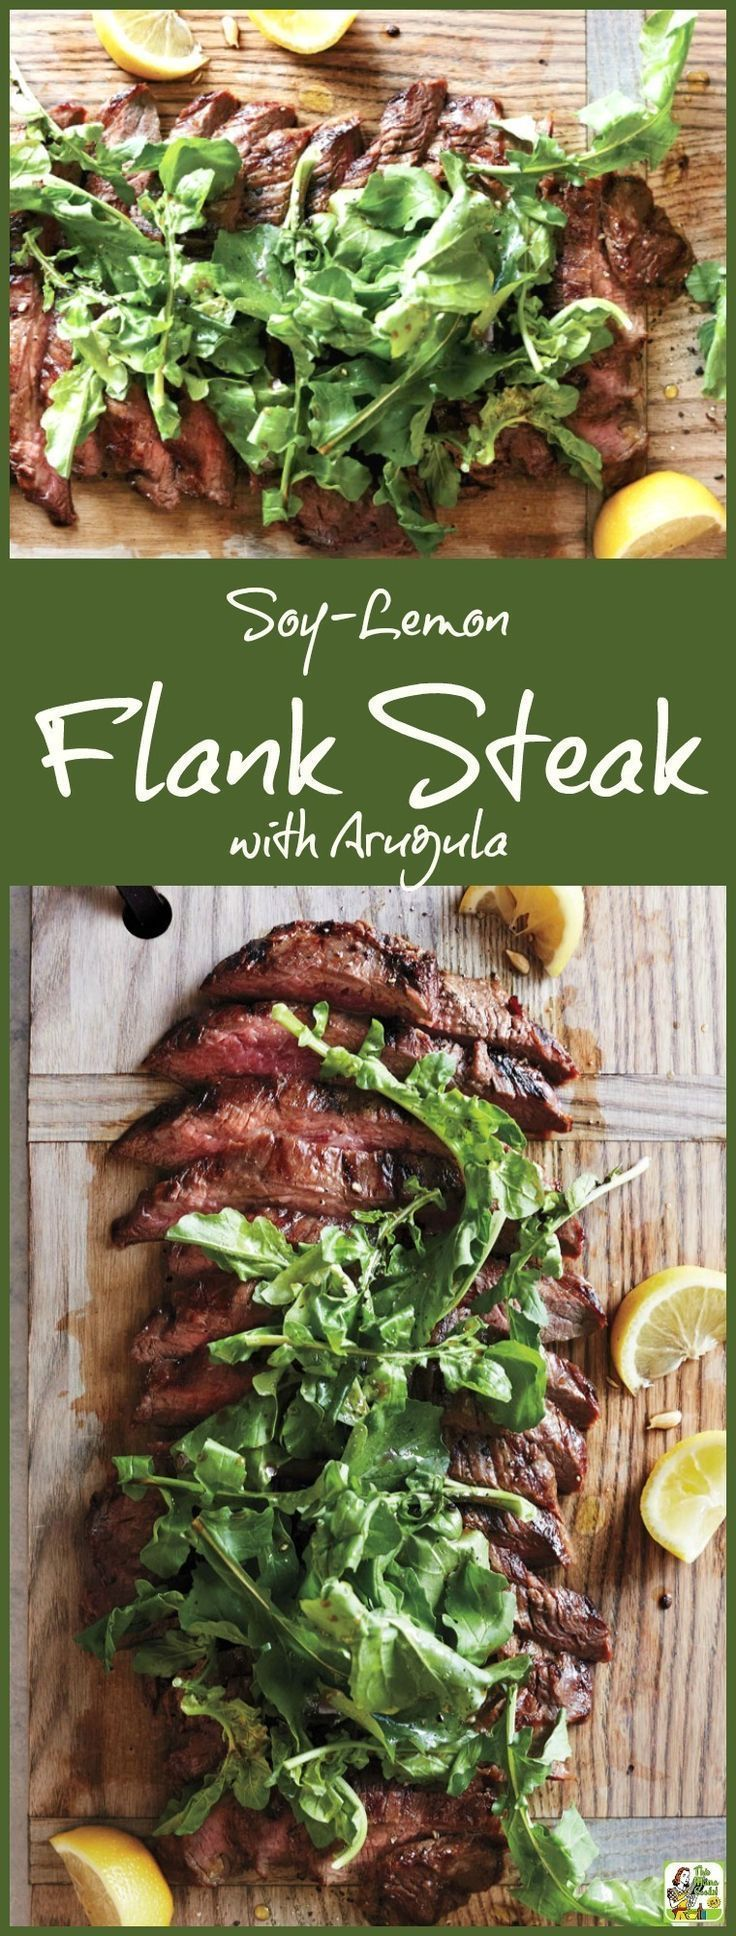 Love to grill? Then you'll enjoy making this easy Soy-Lemon Flank Steak with Arugula recipe. Super simple preparation. Easy enough to make in the morning before work or when you get home before dinner. Use as a weeknight dinner recipe or triple for the pe